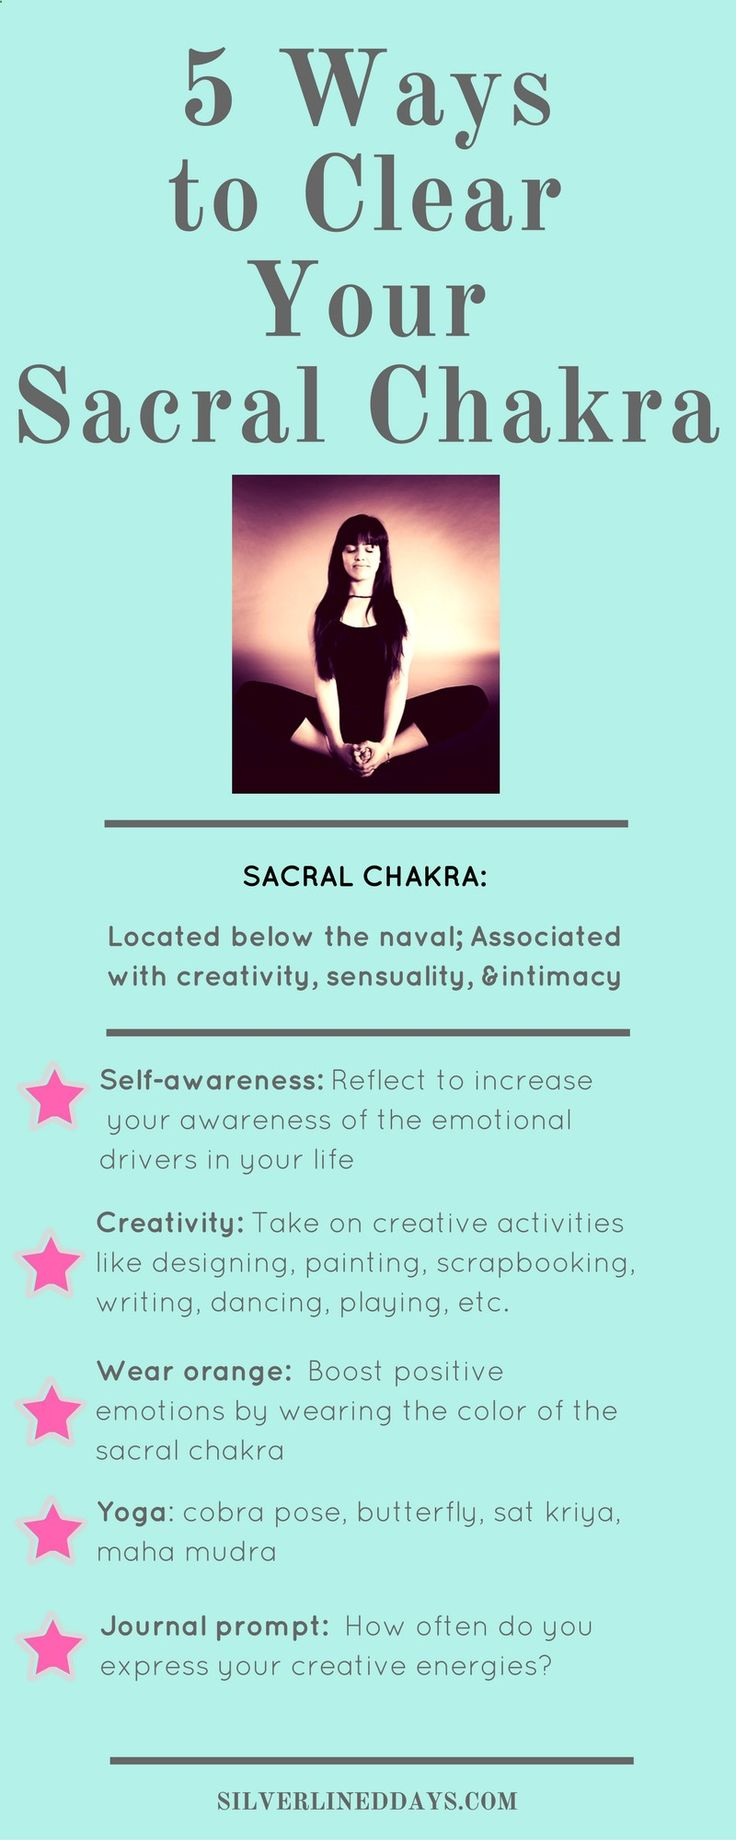 sacral chakra, clear chakra, balance chakra, chakras, reiki, reiki healing, energy healing, chakra cleanse, reiki energy, law of attraction, holistic wellness, natural remedies